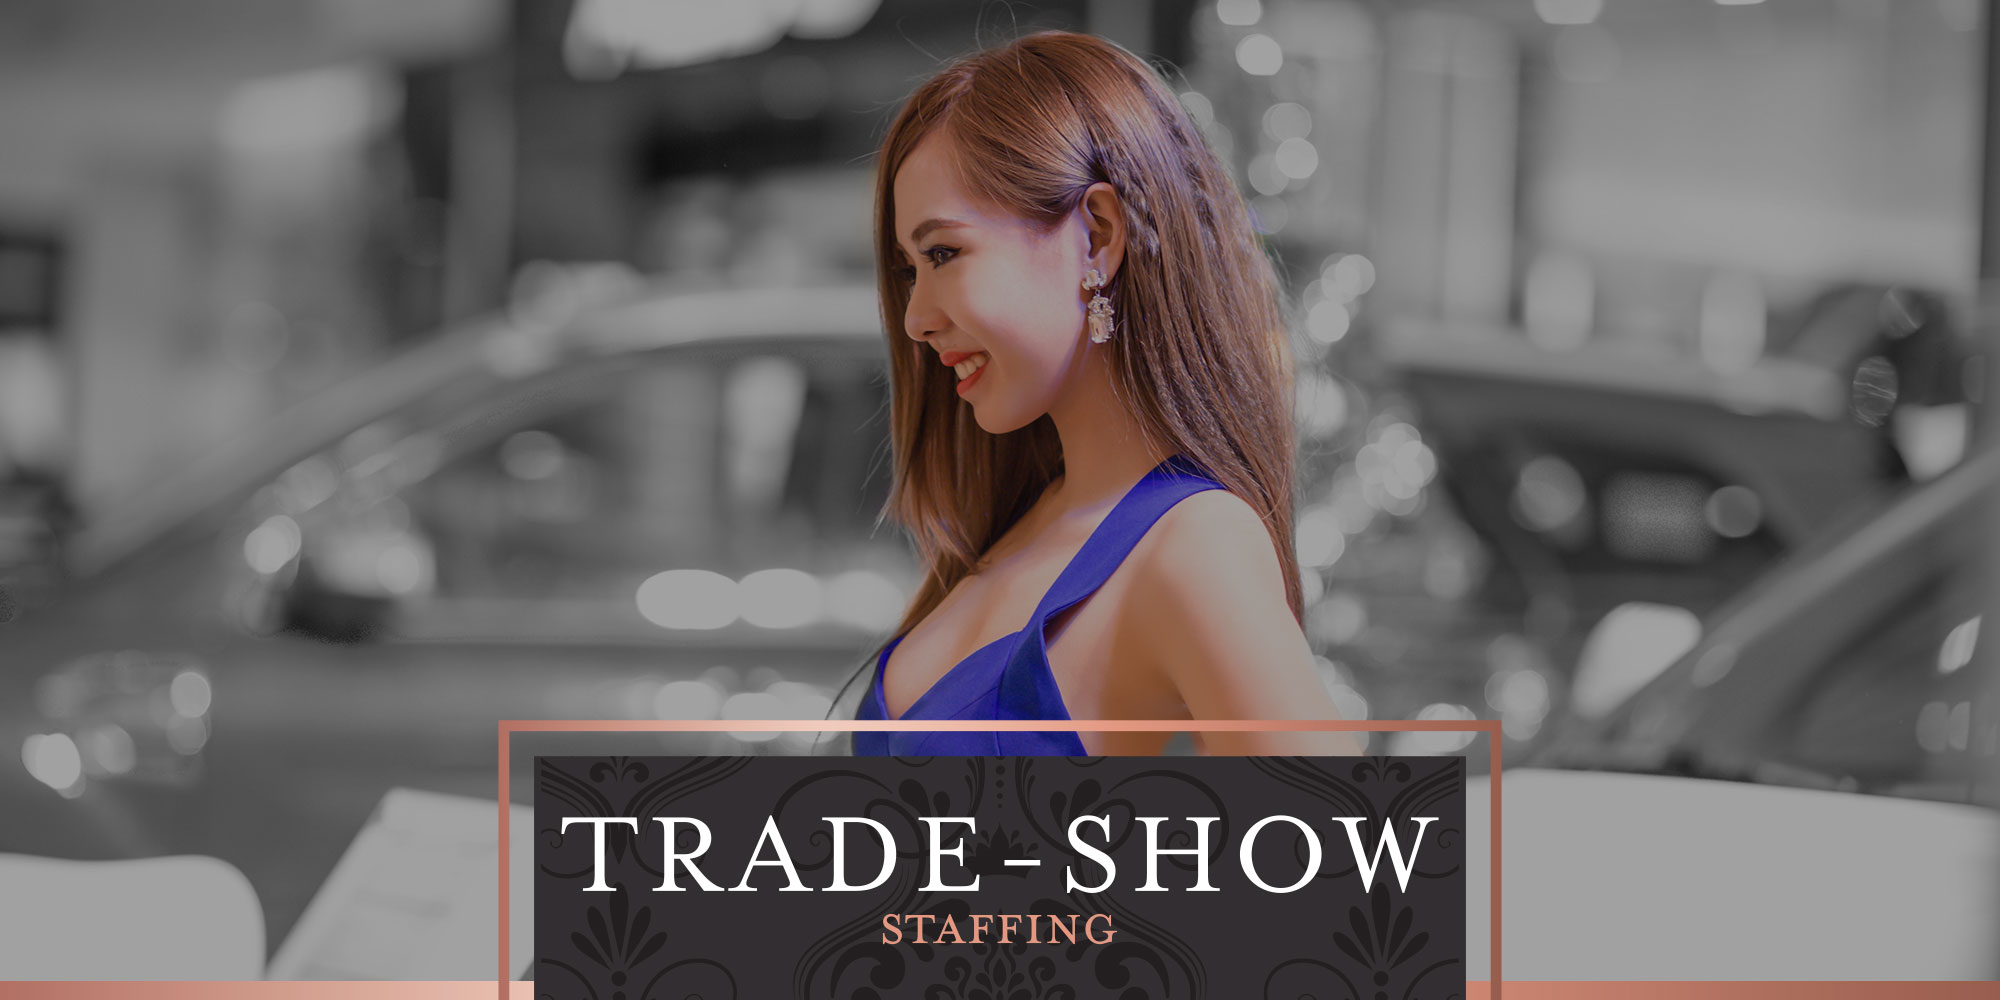 Trade-Show Staffing, exhibition staffing, road show models and promoters